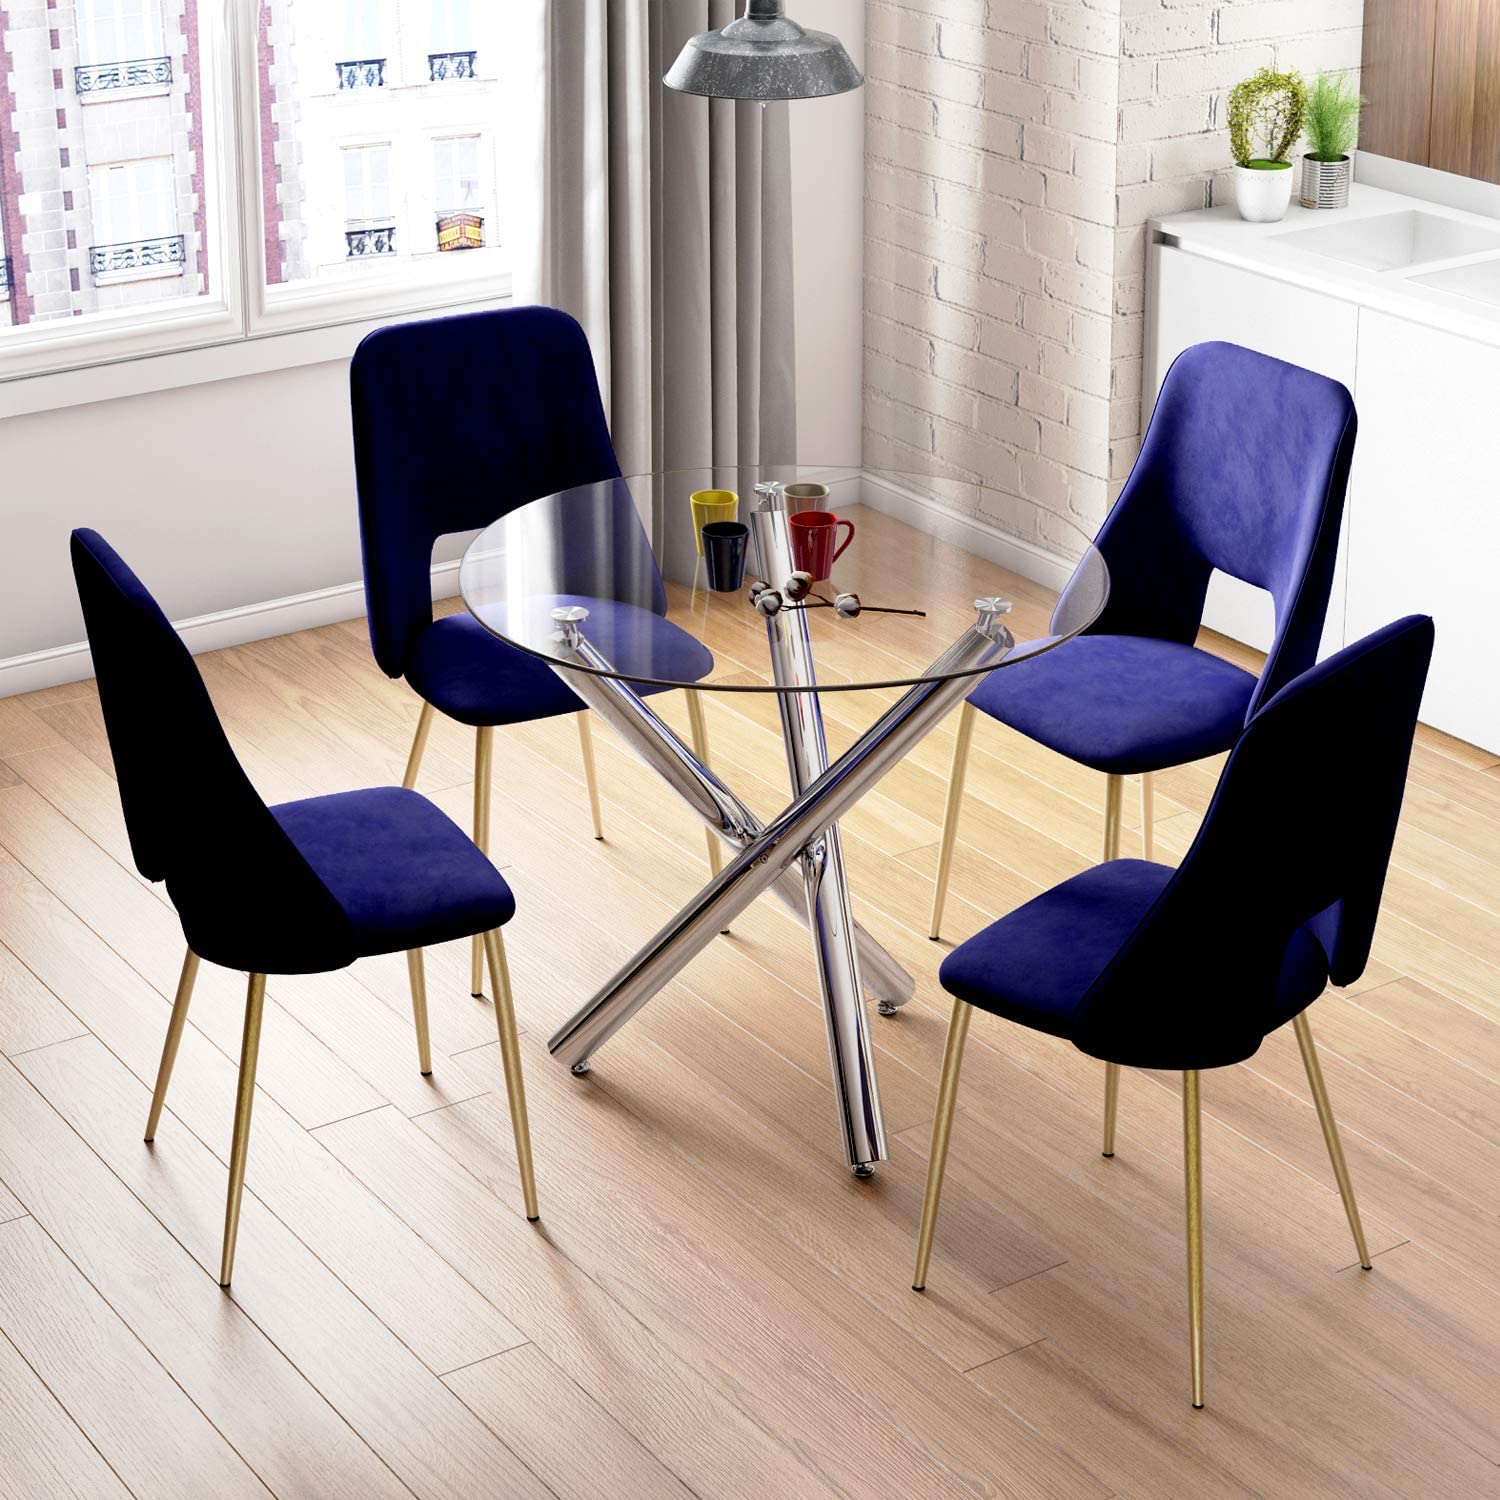 Beliwin Glass Dining Table Modern Round Style Table Furniture for Kitchen Dining Room Black Round